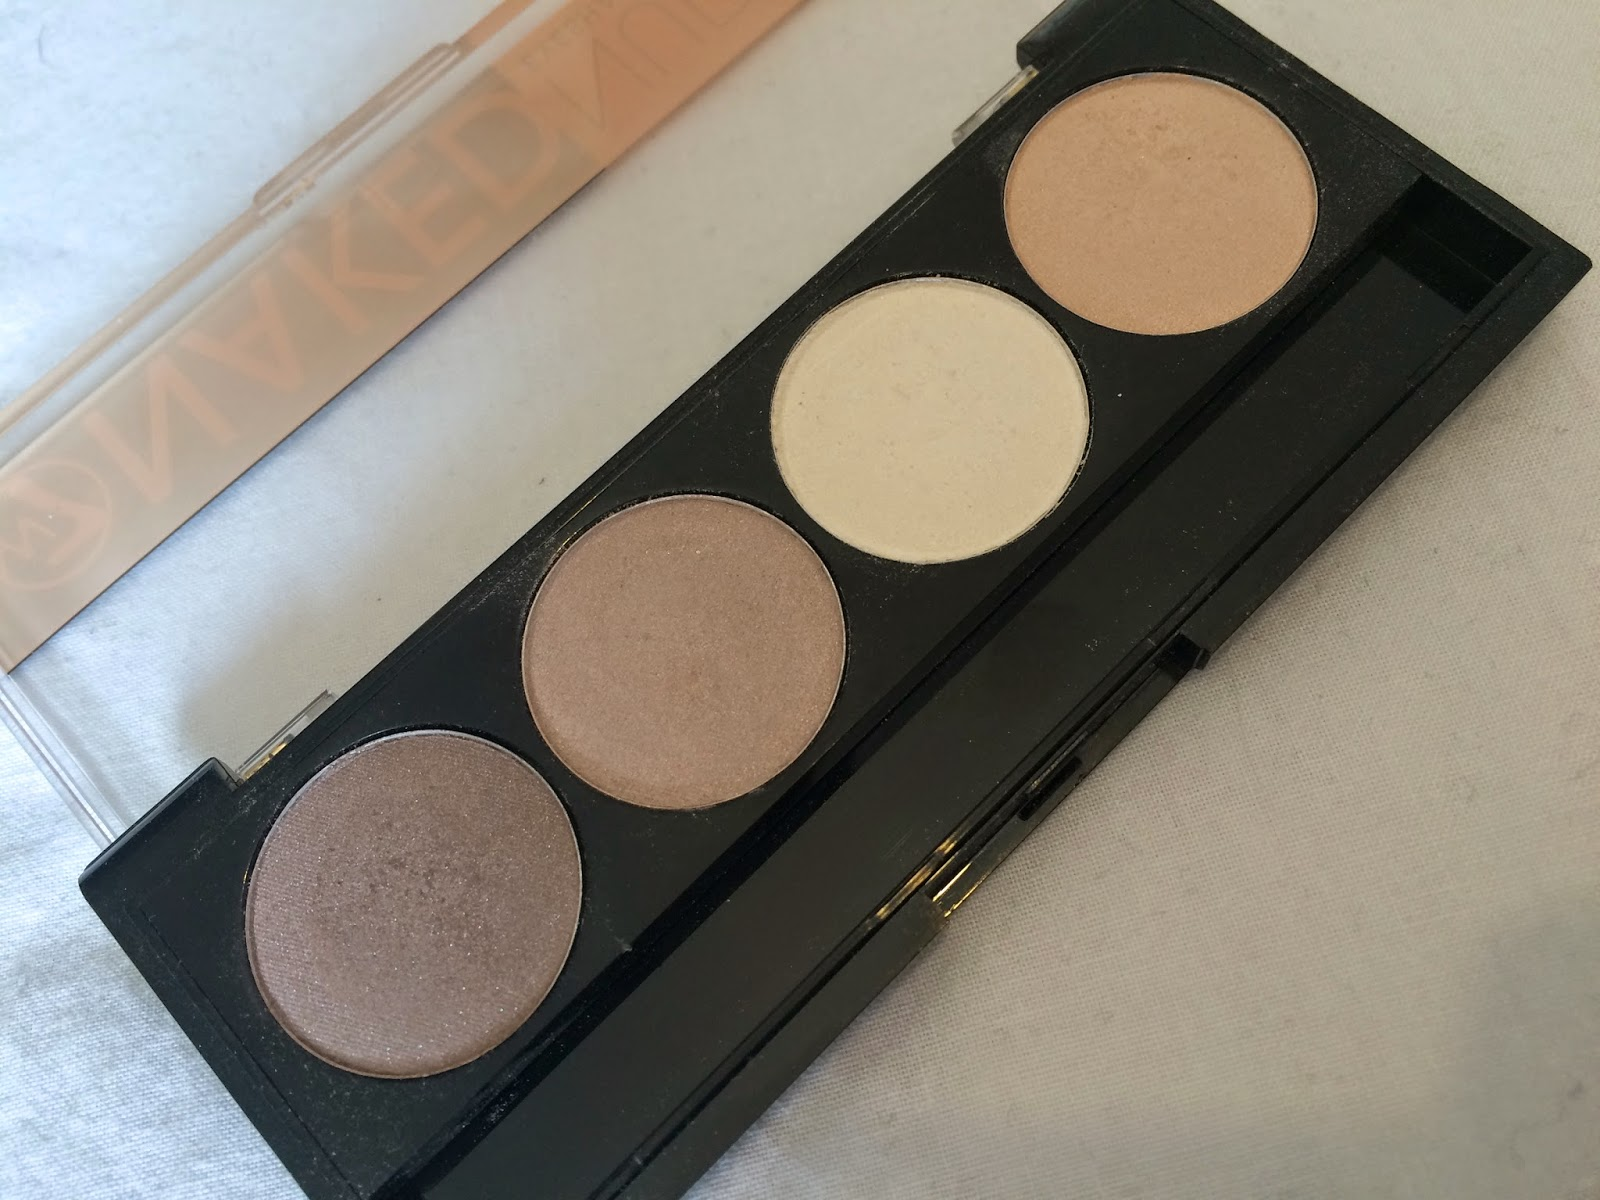 Review: An Affordable Neutral Eyeshadow Palette